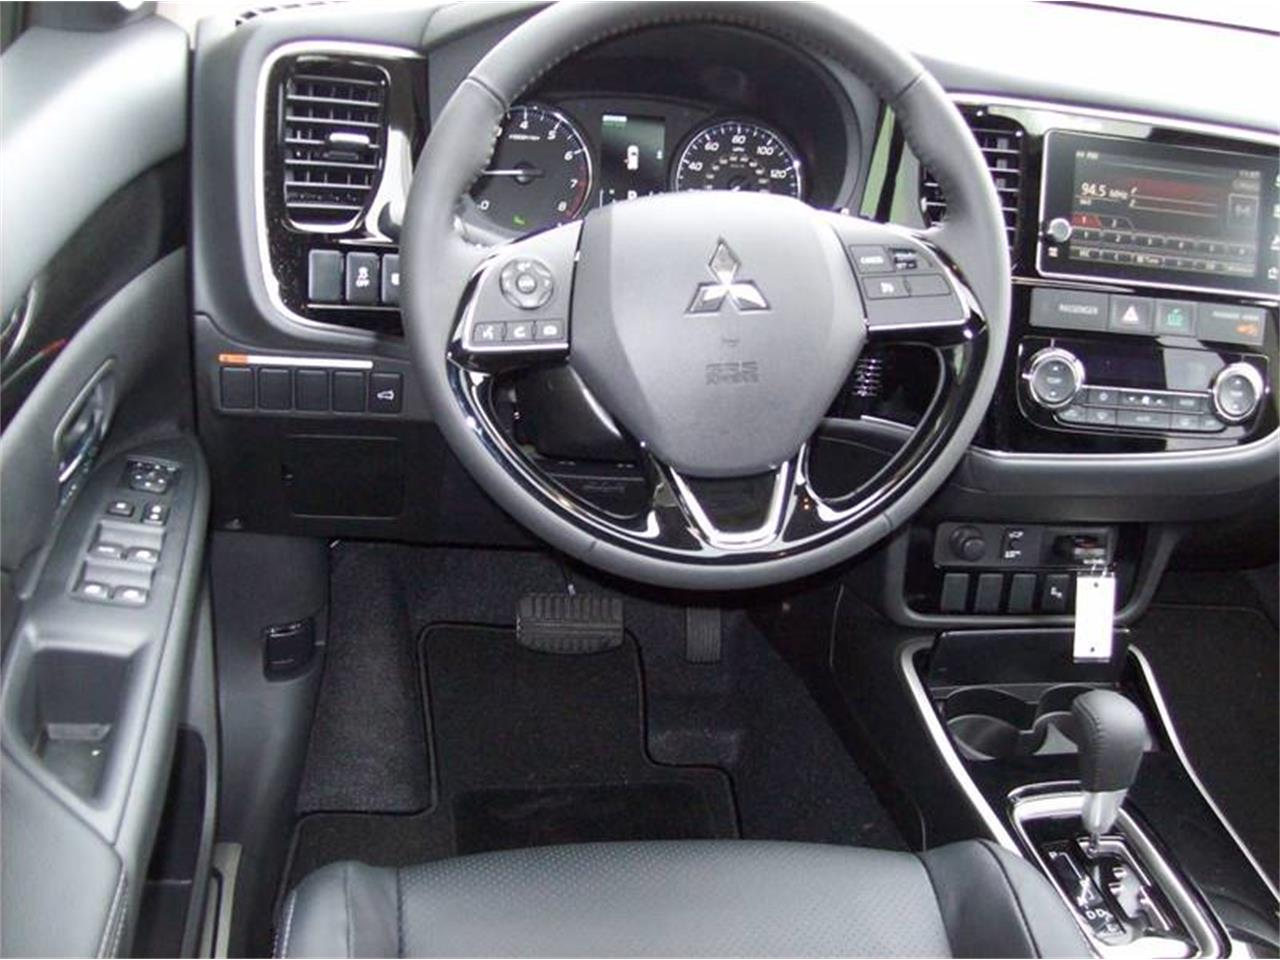 Large Picture of 2017 Mitsubishi Outlander located in Michigan Offered by Verhage Mitsubishi - LG8N